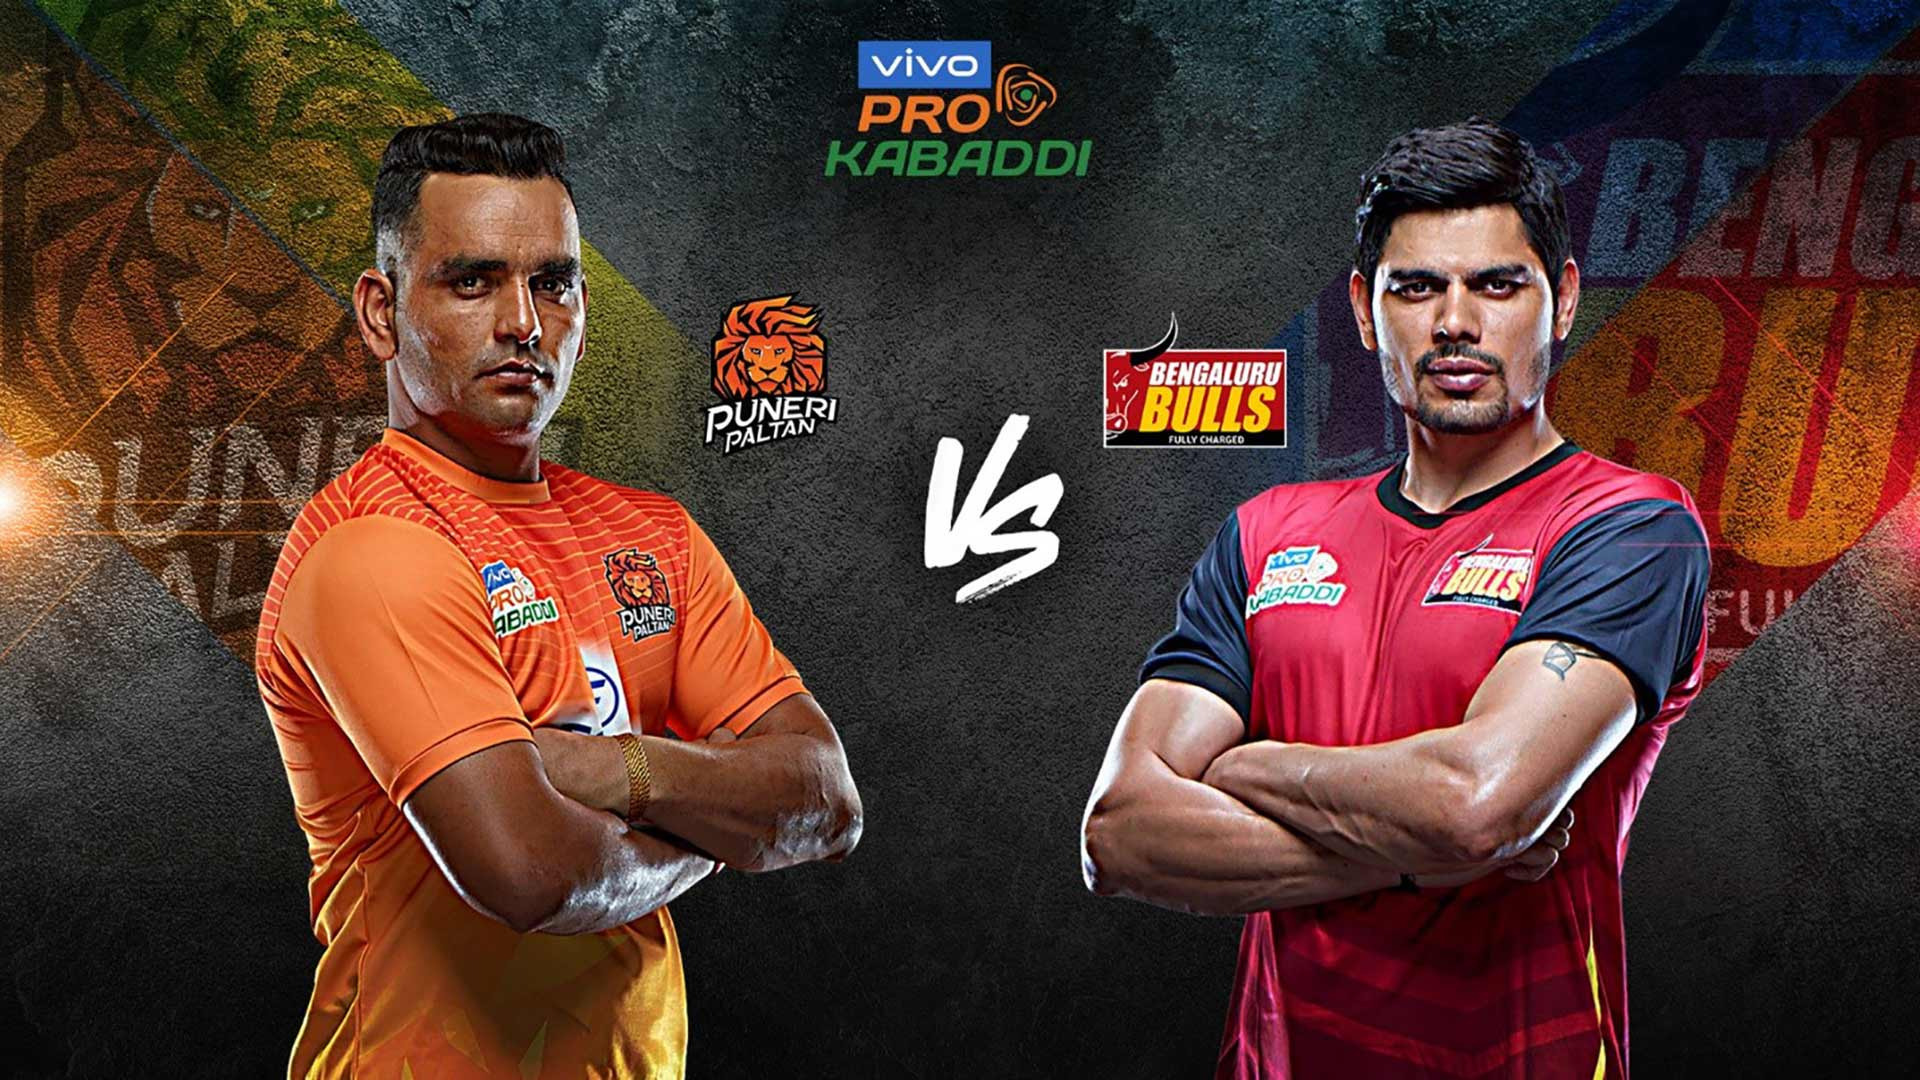 BLR Vs PUN Dream 11 Prediction: Puneri Paltan Vs Bengaluru Bulls Pro Kabaddi League Dream 11 Team Picks, Match Report And Probable Playing 7 And Winner